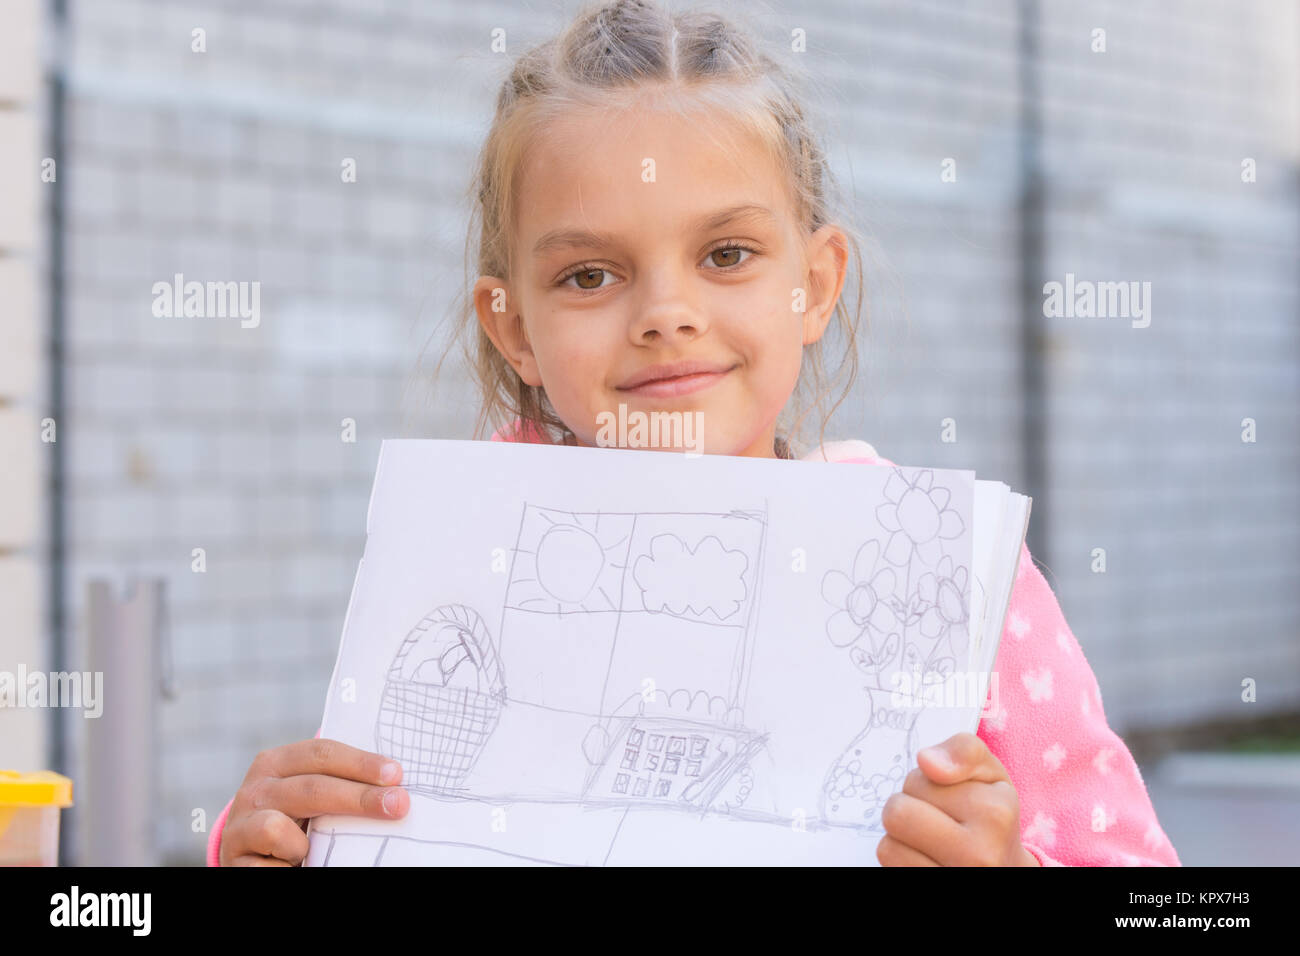 A girl shows a drawing, drawn in pencil - Stock Image